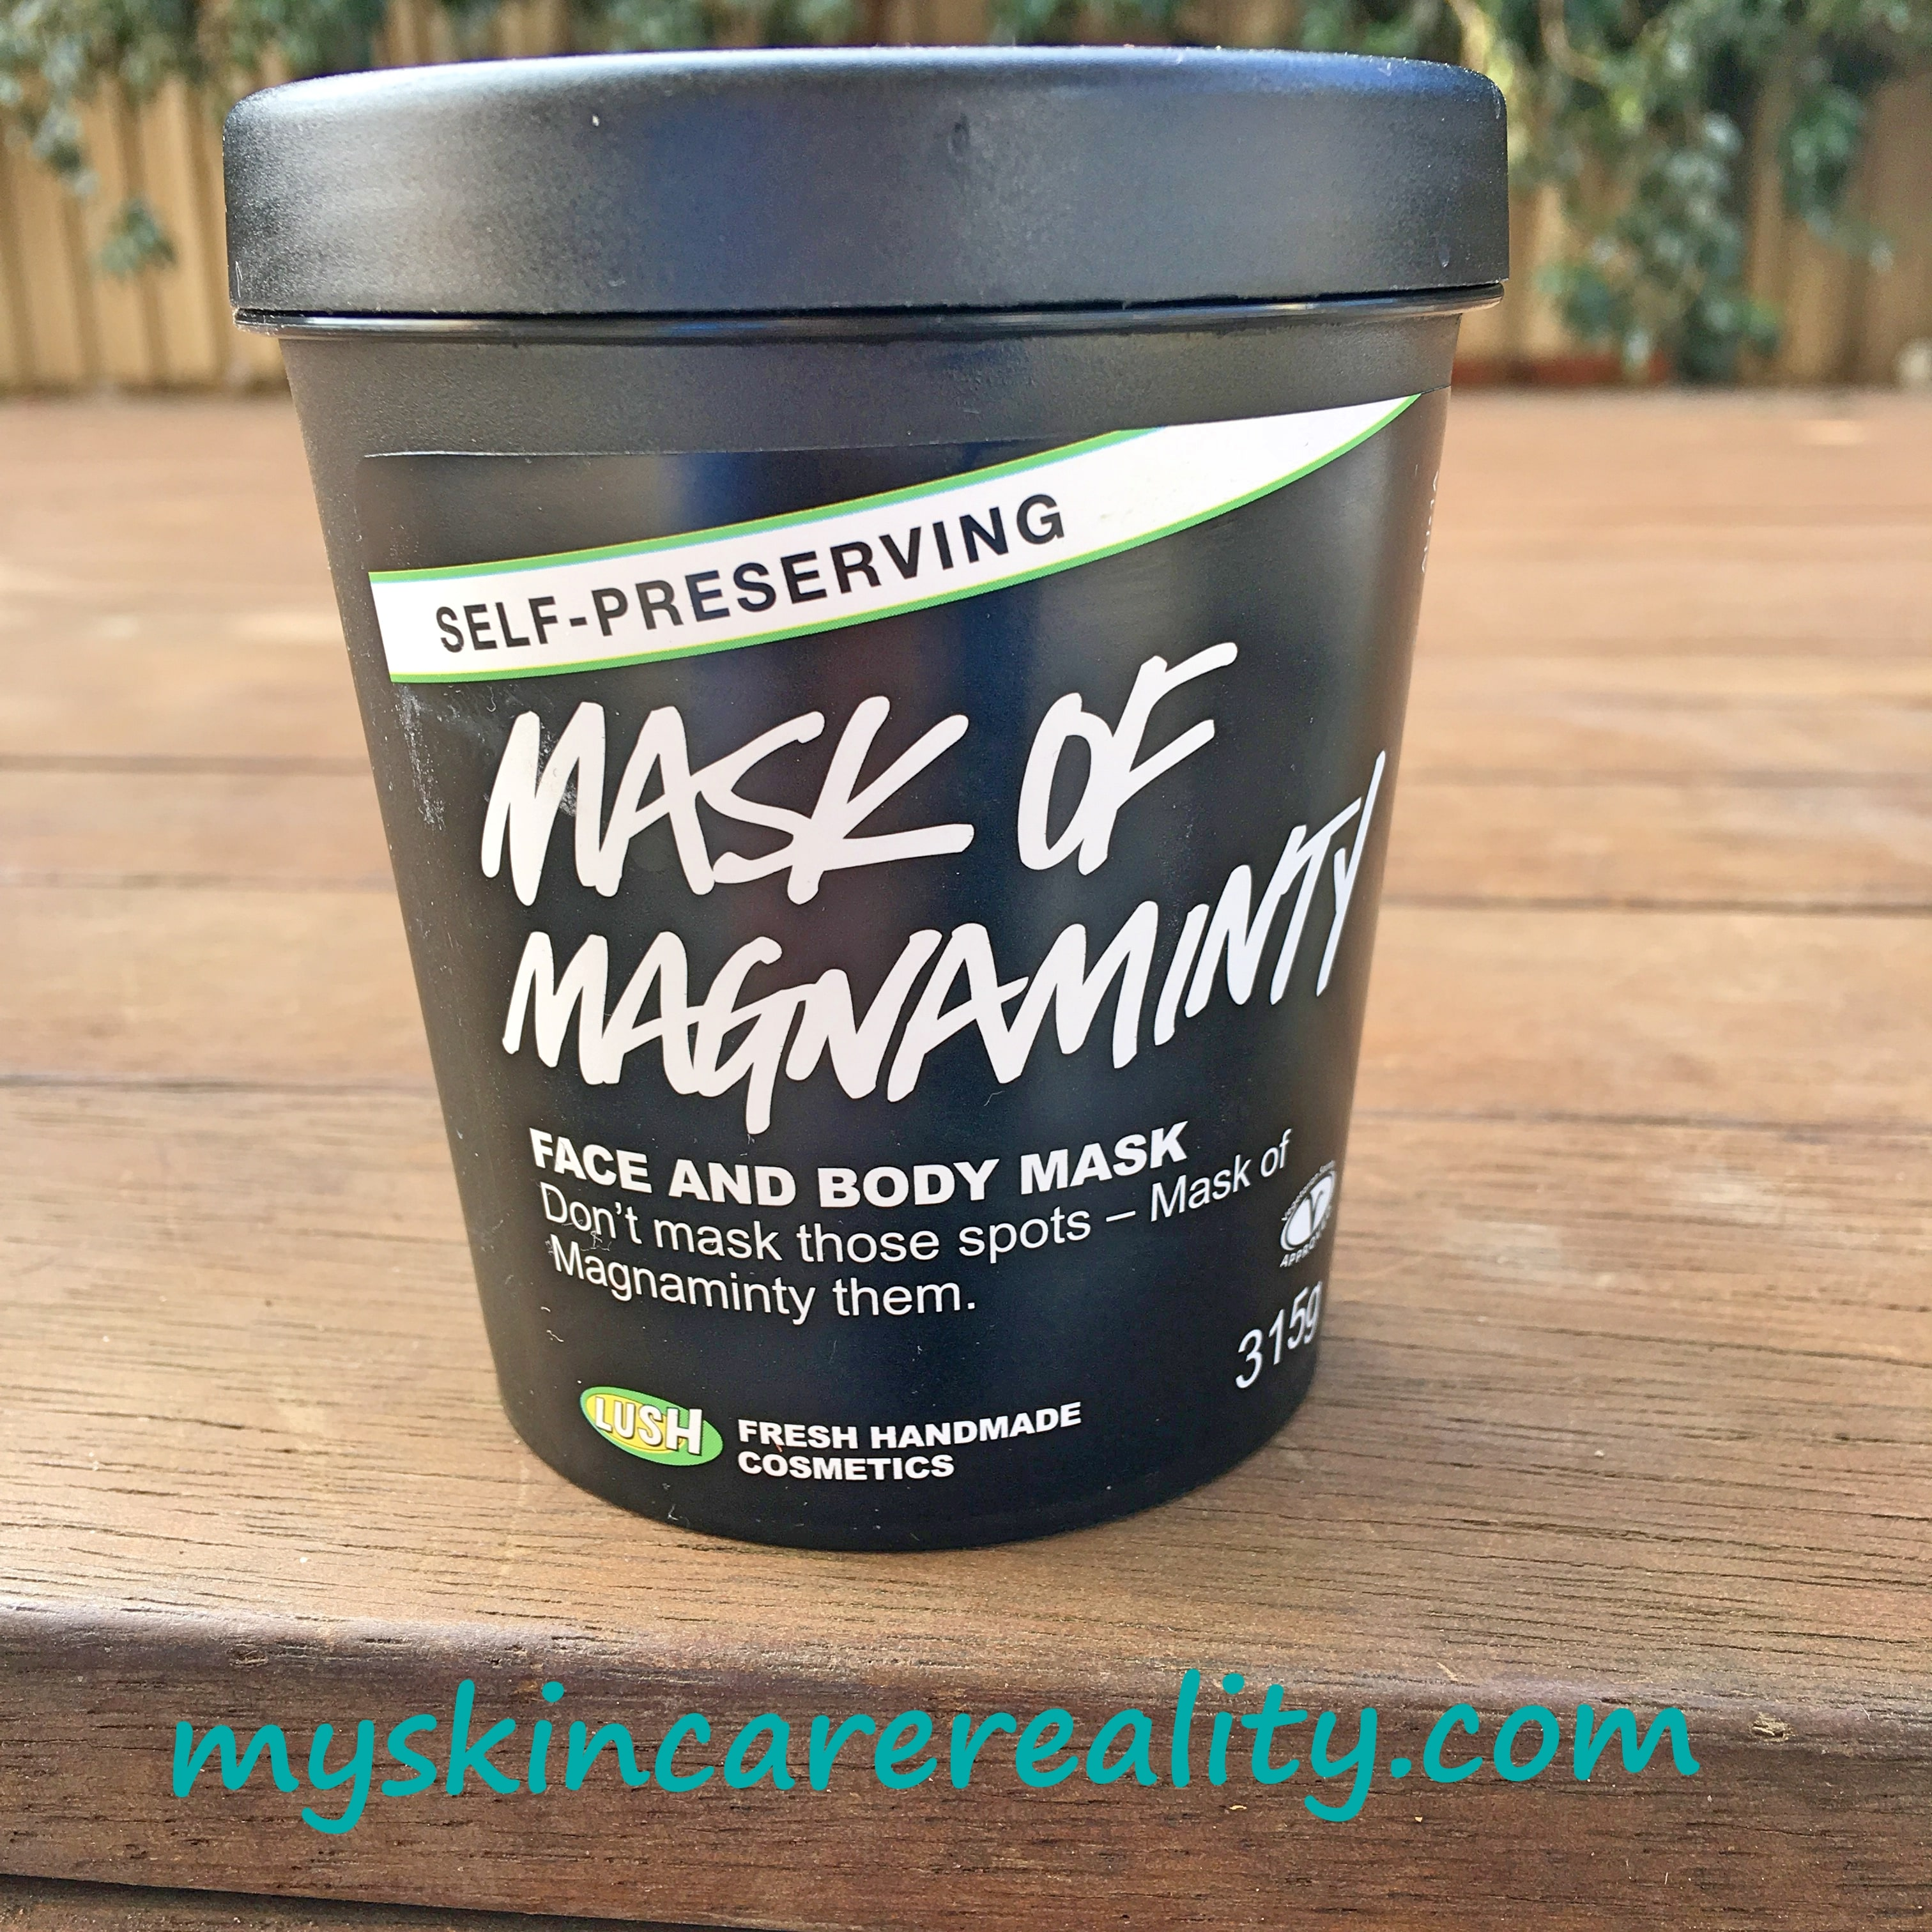 Lush – Mask of Magnaminty Review